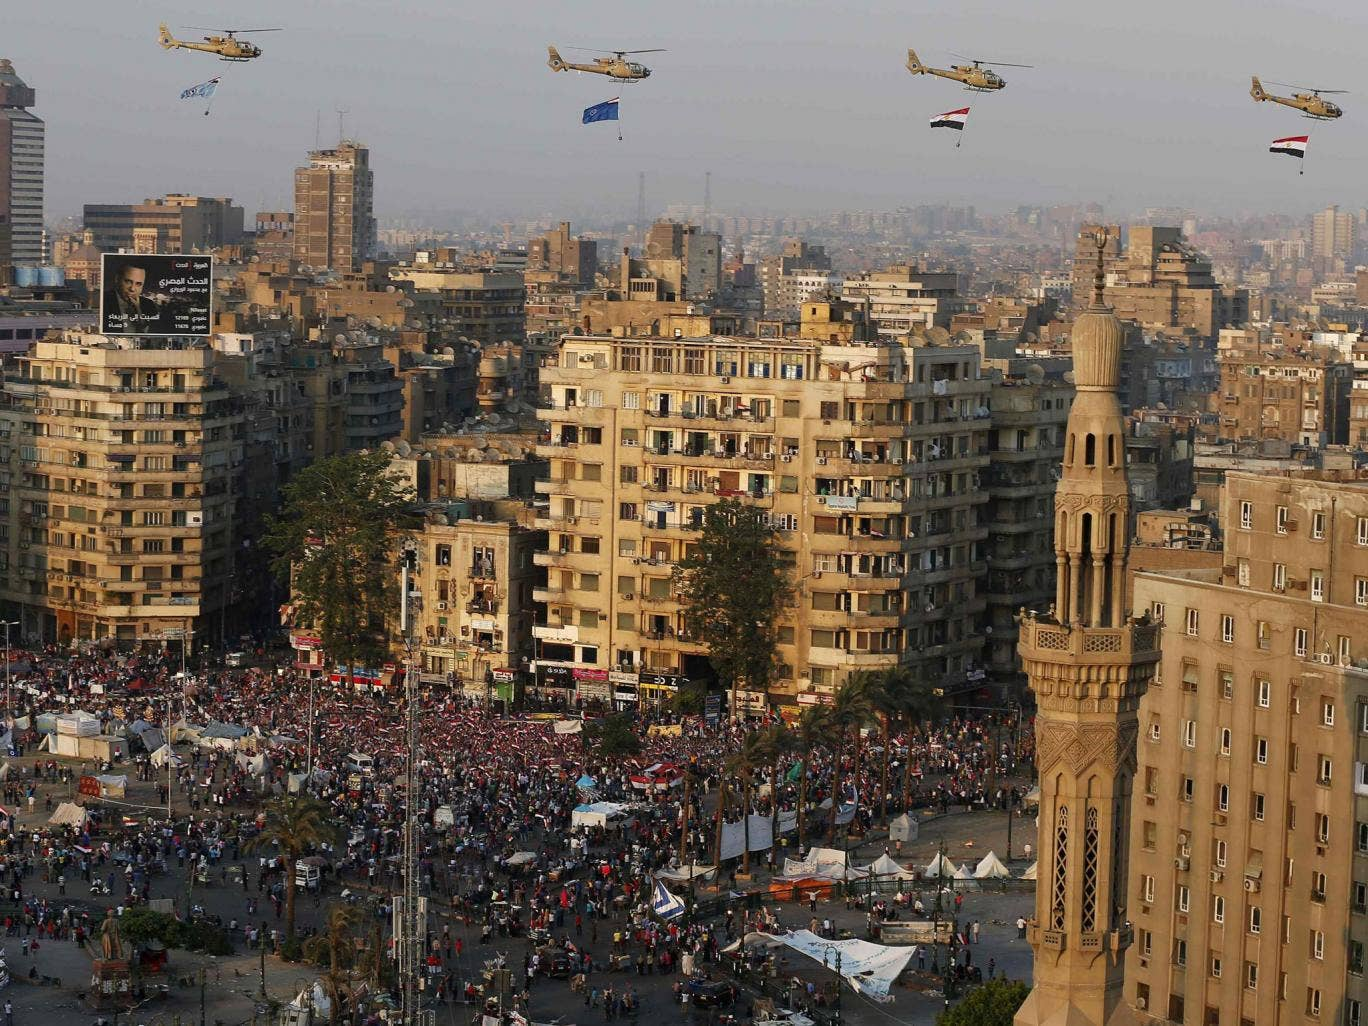 A view shows a fly-past over protesters against ousted Egyptian President Mohamed Morsi, in Tahrir Square